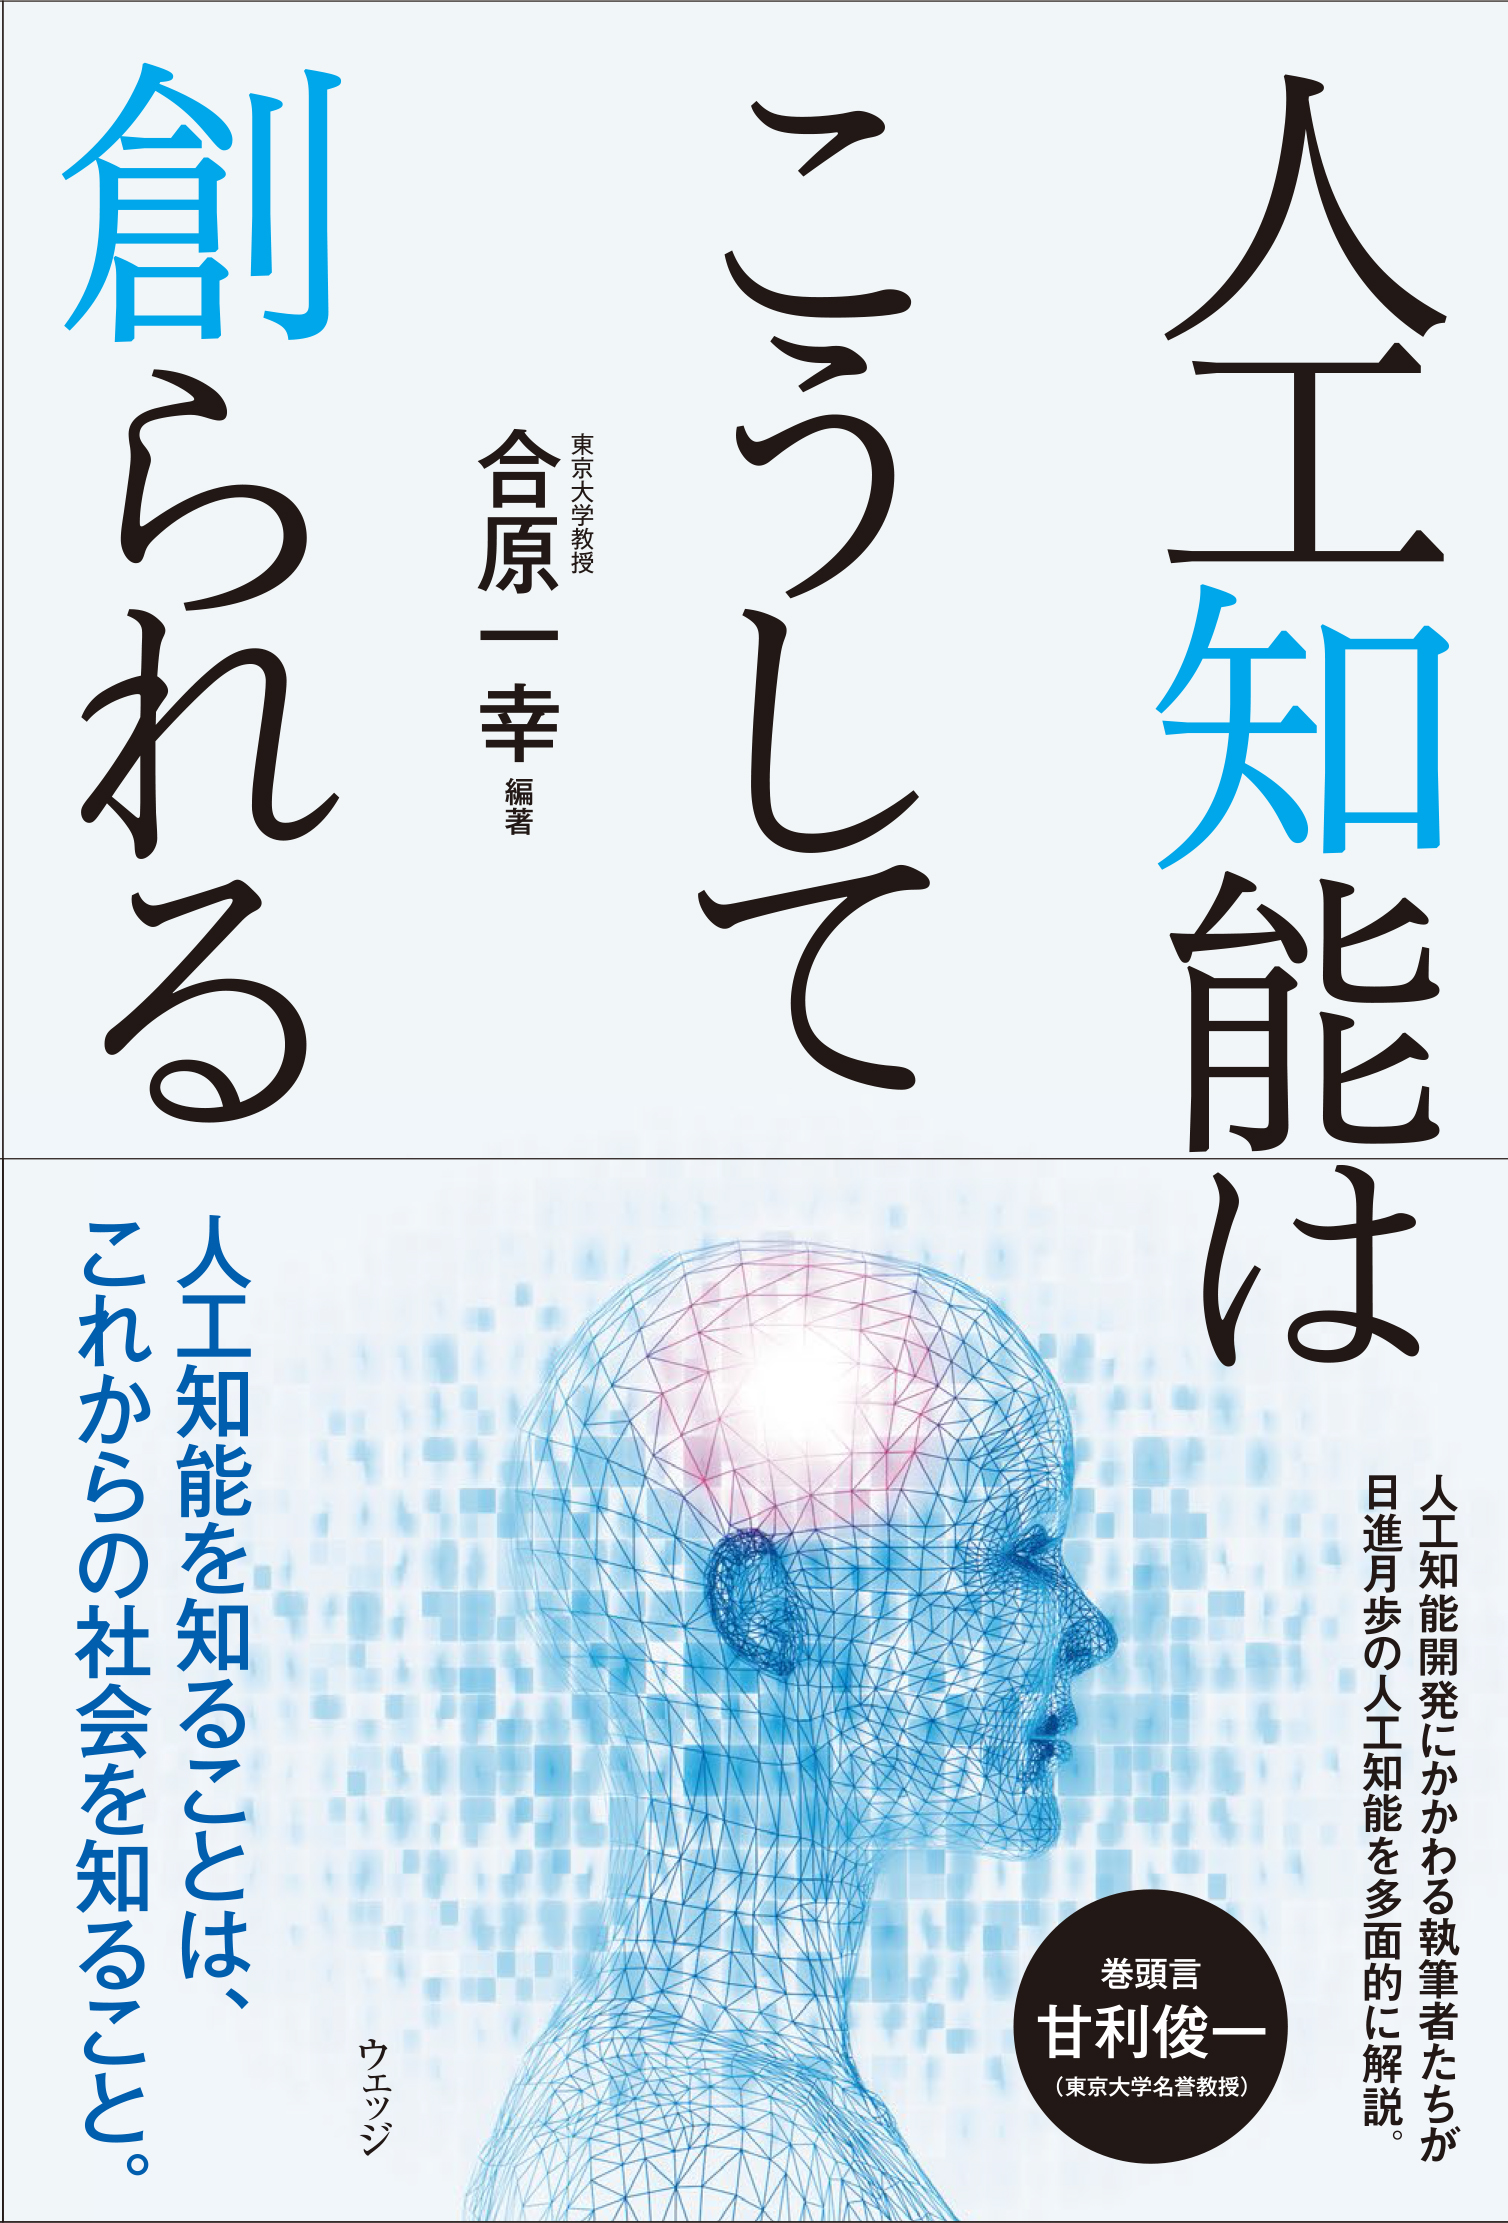 A light blue cover with an illustration of human body